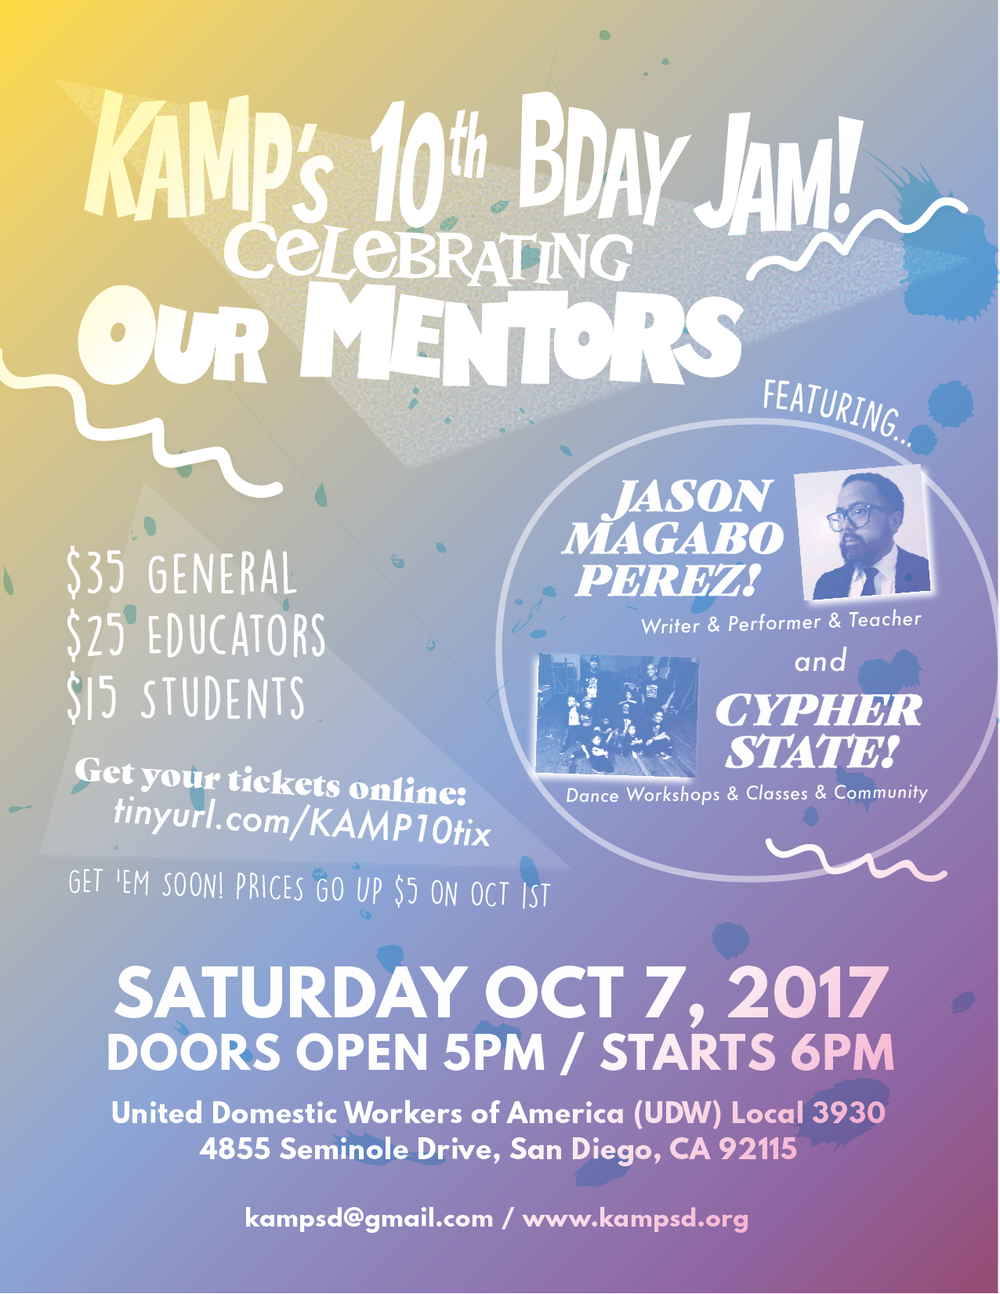 Flyer for KAMP's 10th Anniversary Event